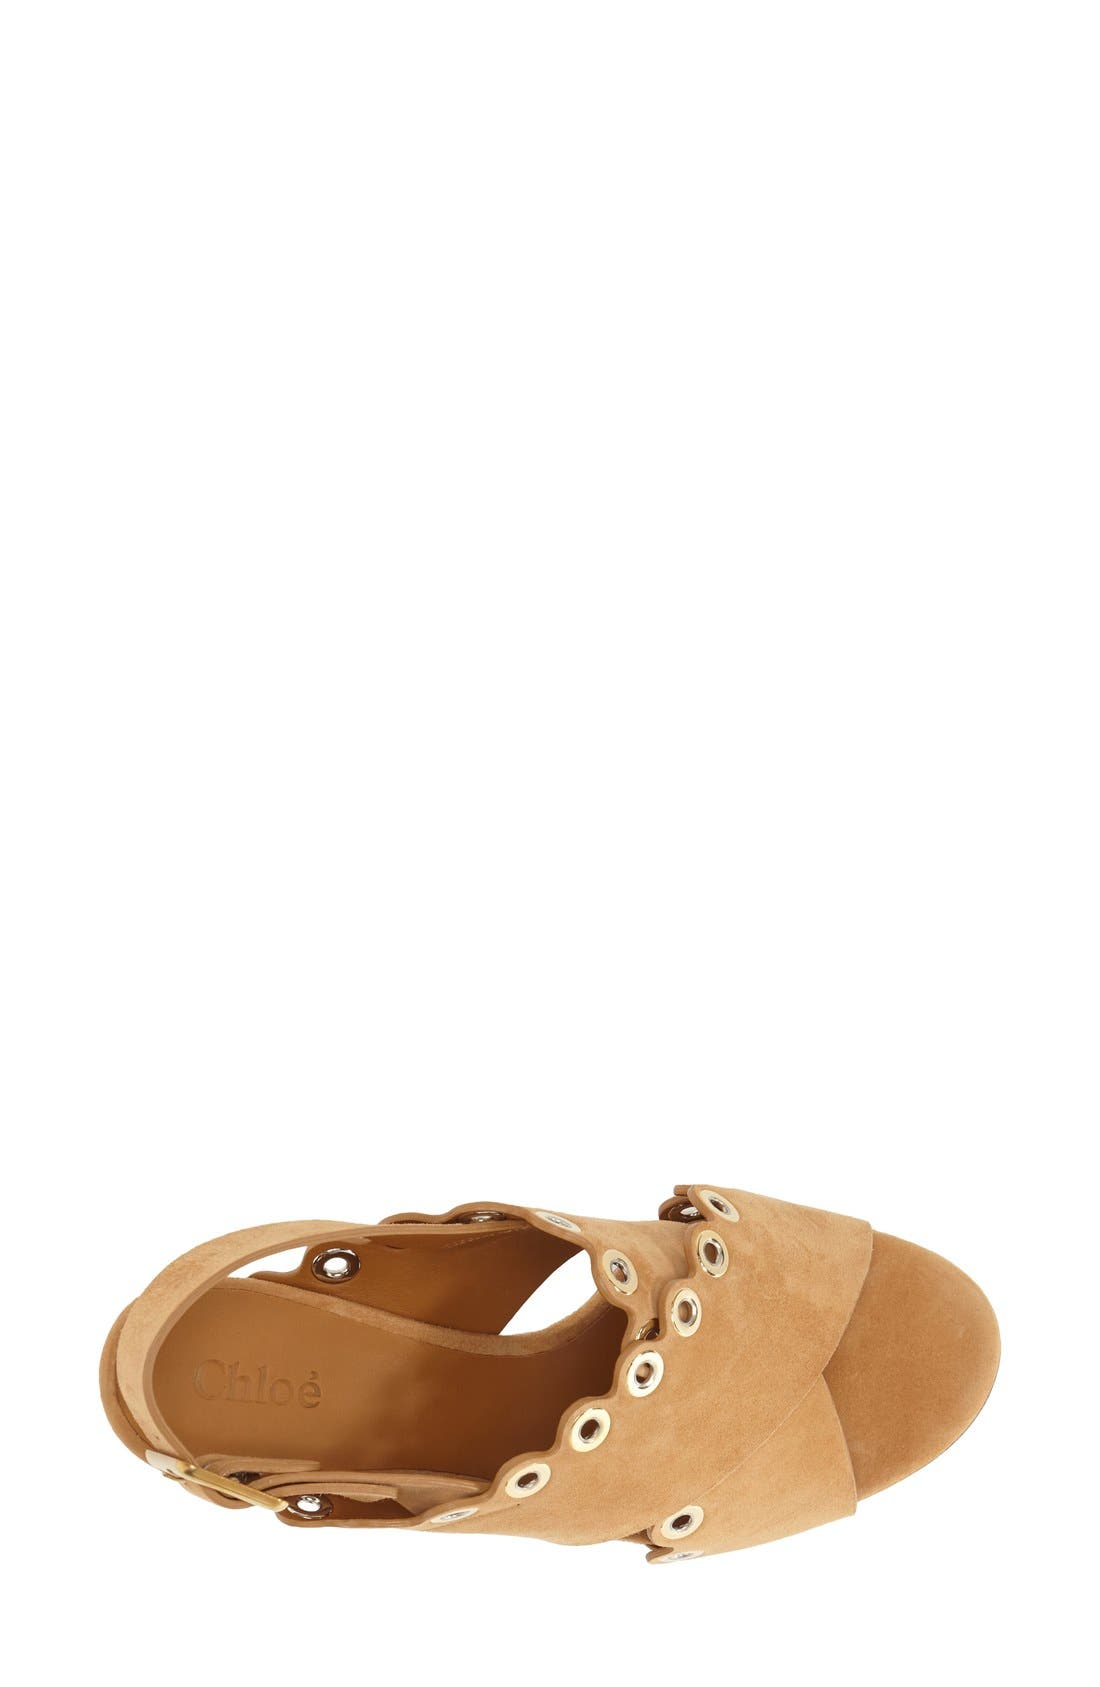 'Flo' Sandal,                             Alternate thumbnail 3, color,                             Beige Suede